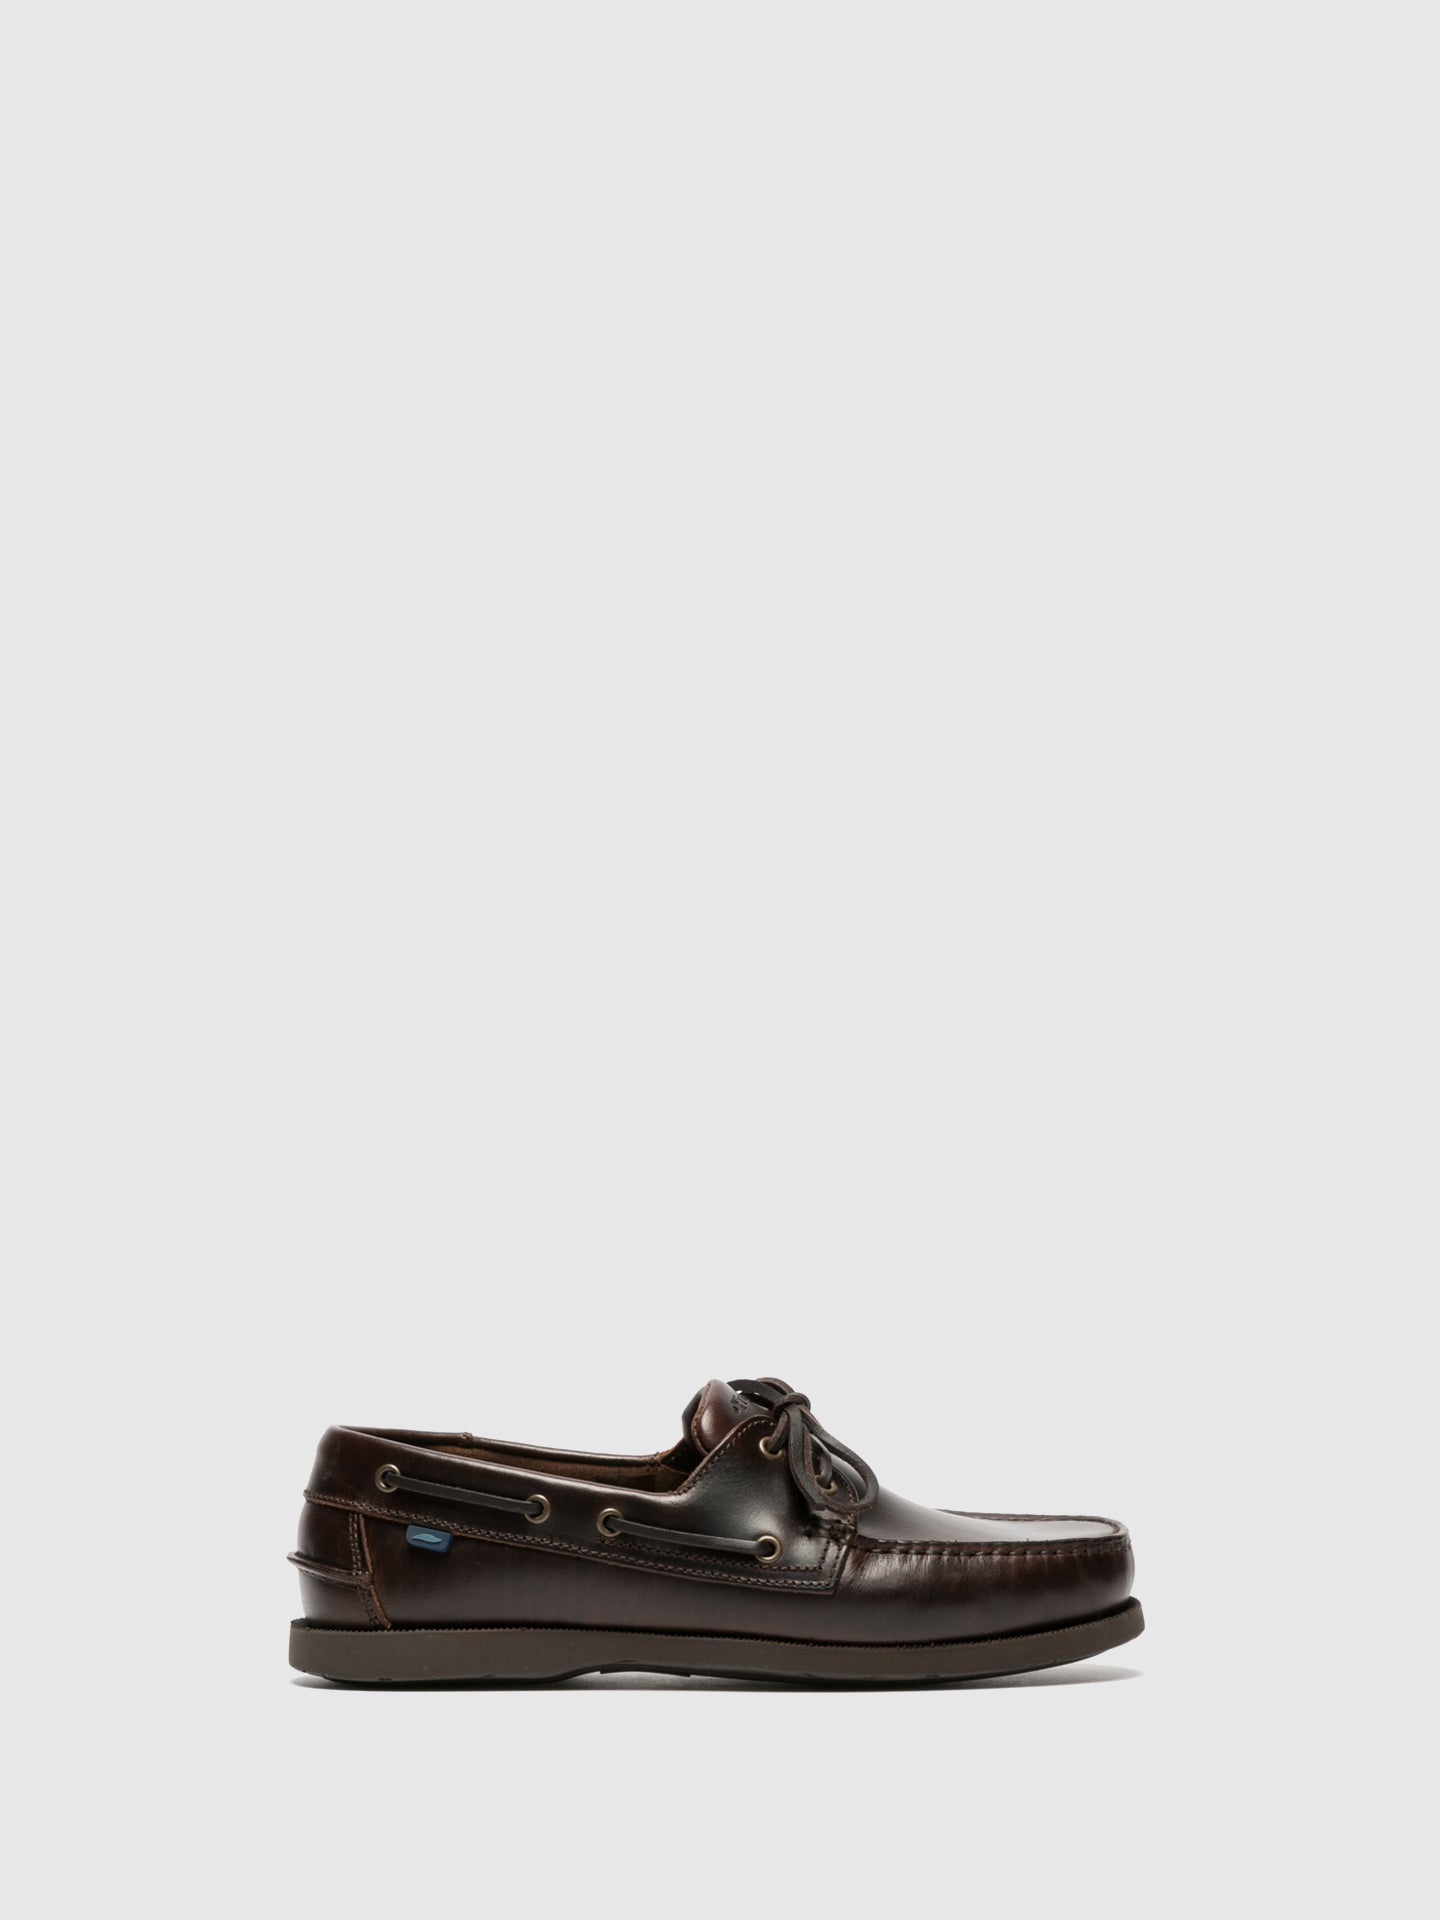 Yucca Brown Nautical Shoes